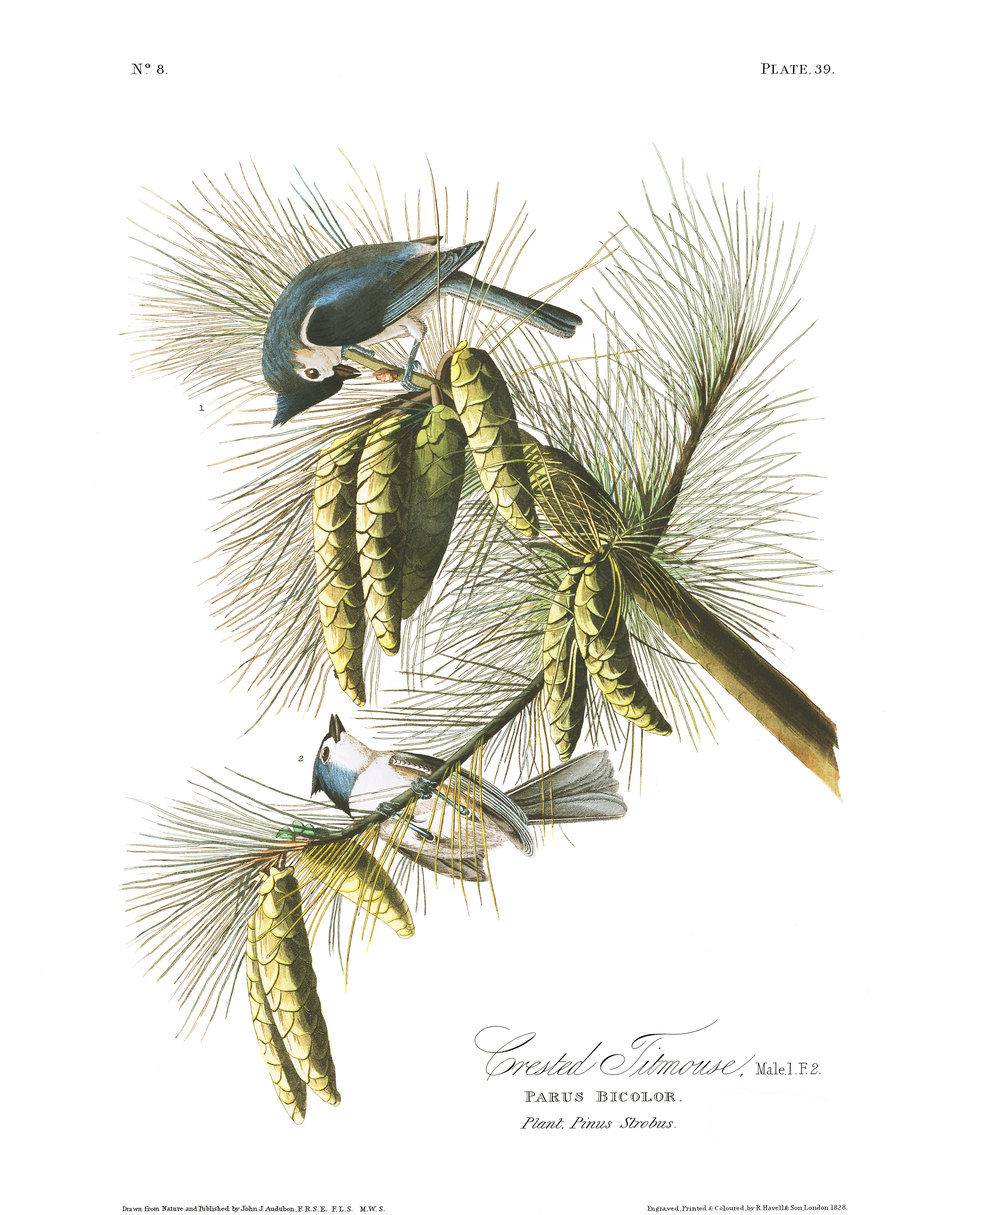 Plate 39, Crested Titmouse